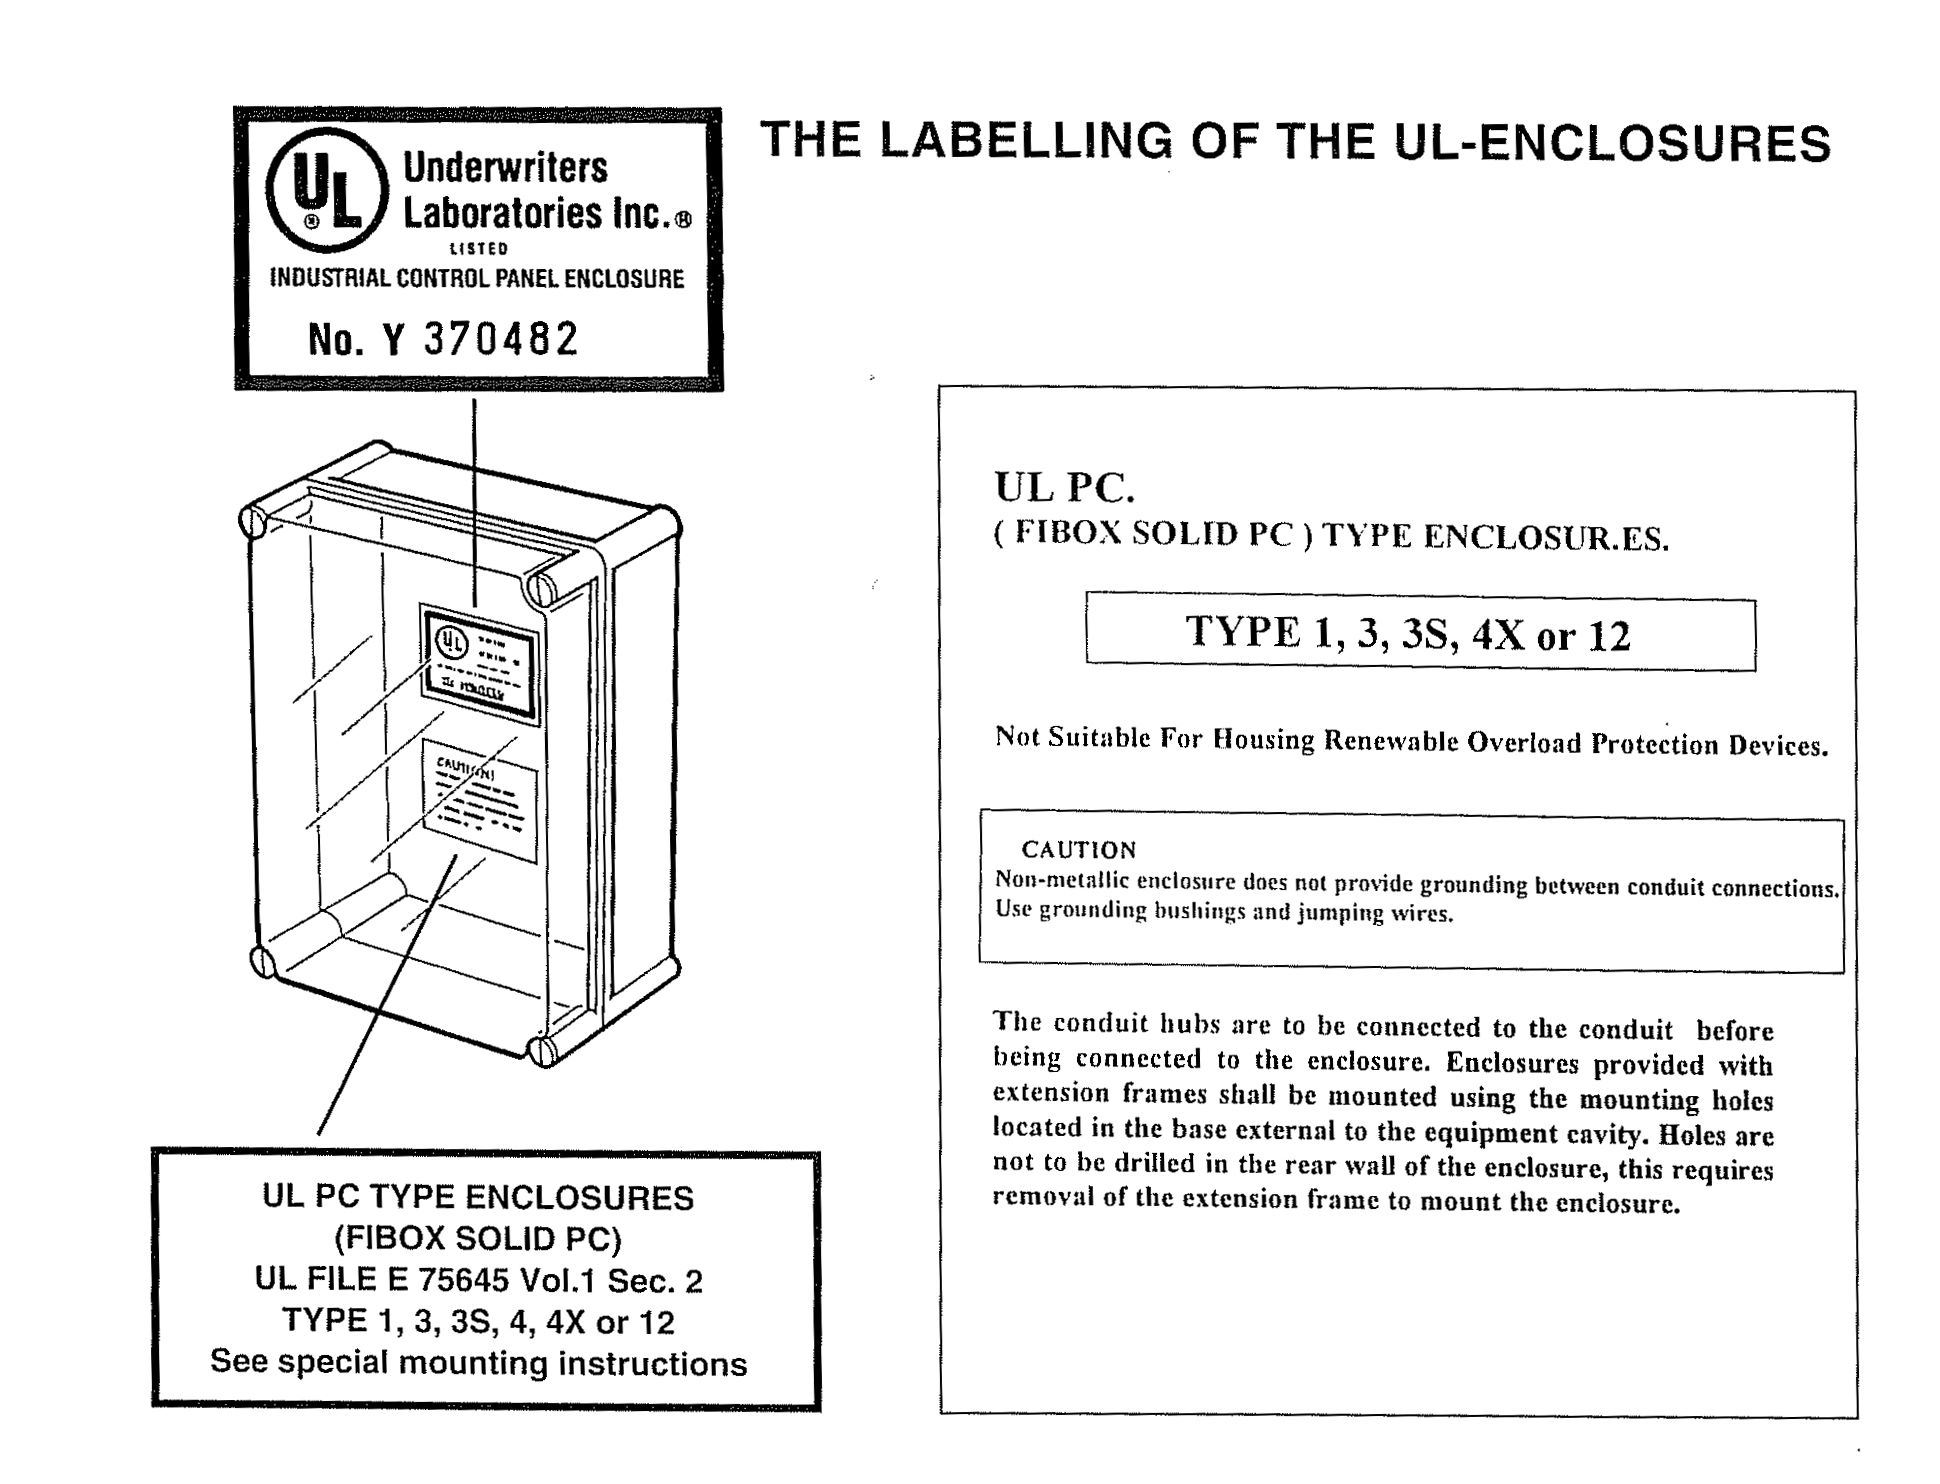 UL Type Fibox Enclosure